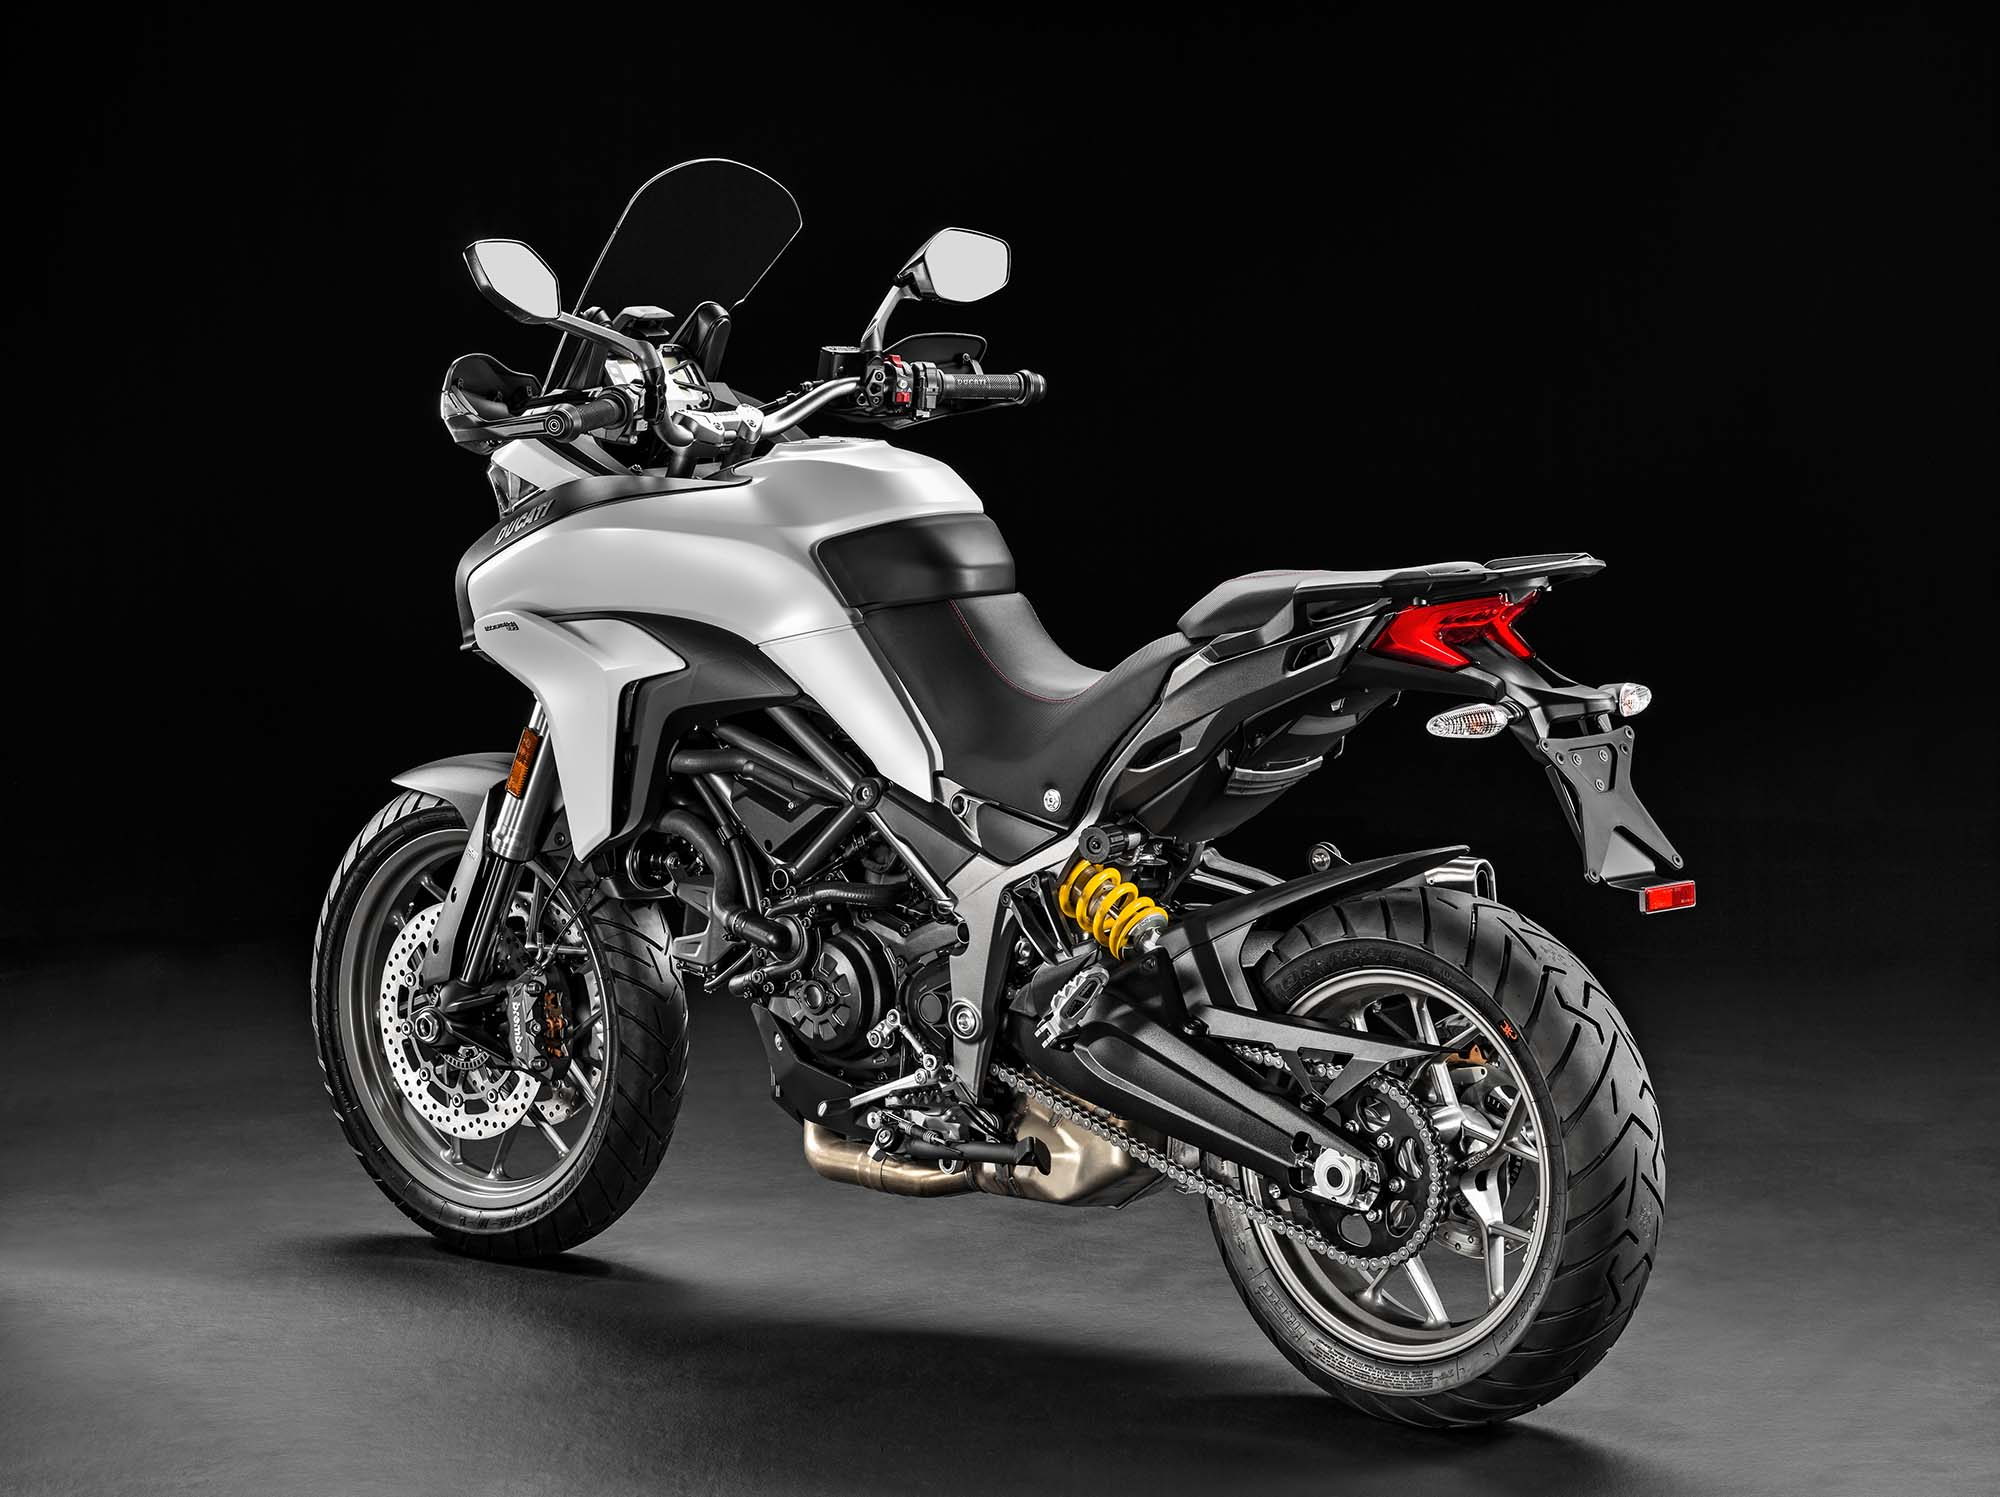 ducati multistrada 950 a baby adv bike from italy. Black Bedroom Furniture Sets. Home Design Ideas